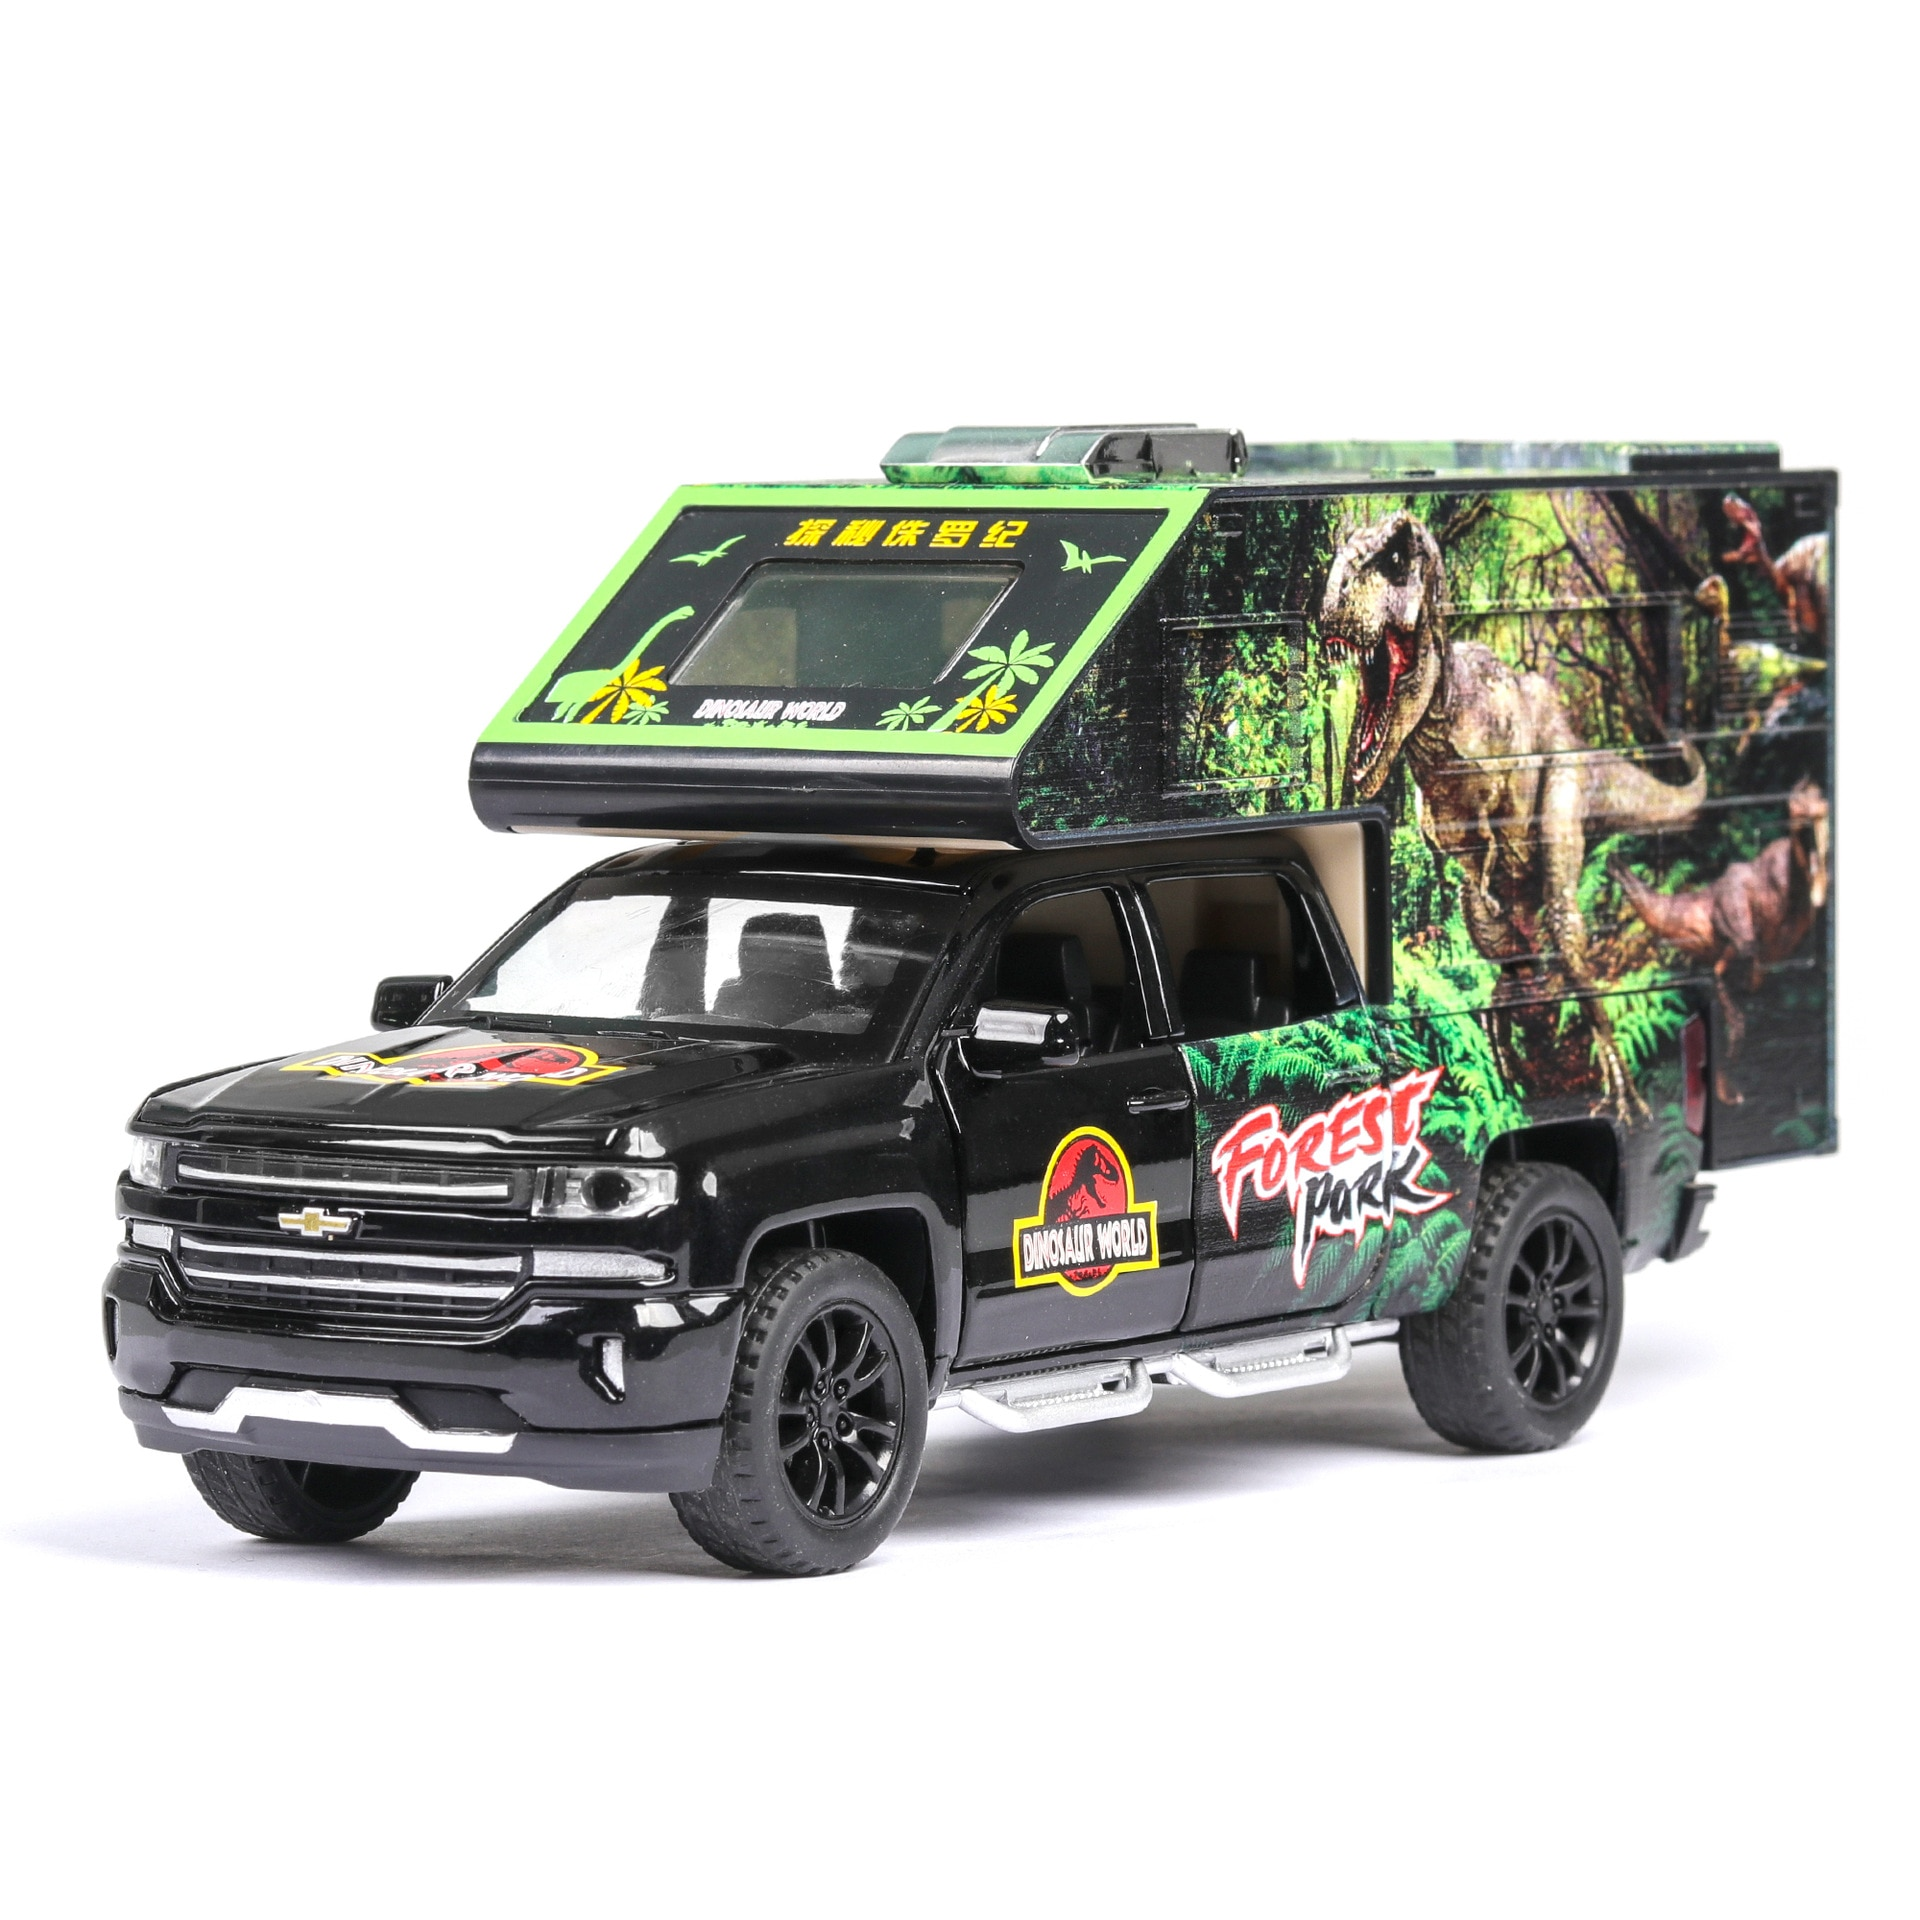 1:32 Diecast Car Model Metal Suv Vehicle Simulation Dinosaur Overlord Toy Car Plastic Wheels Sound And Light Pull Back Car Gift 1 24 diecast alloy car model metal car toy wheels toy vehicle simulation sound light pull back car collection kids toy car gift